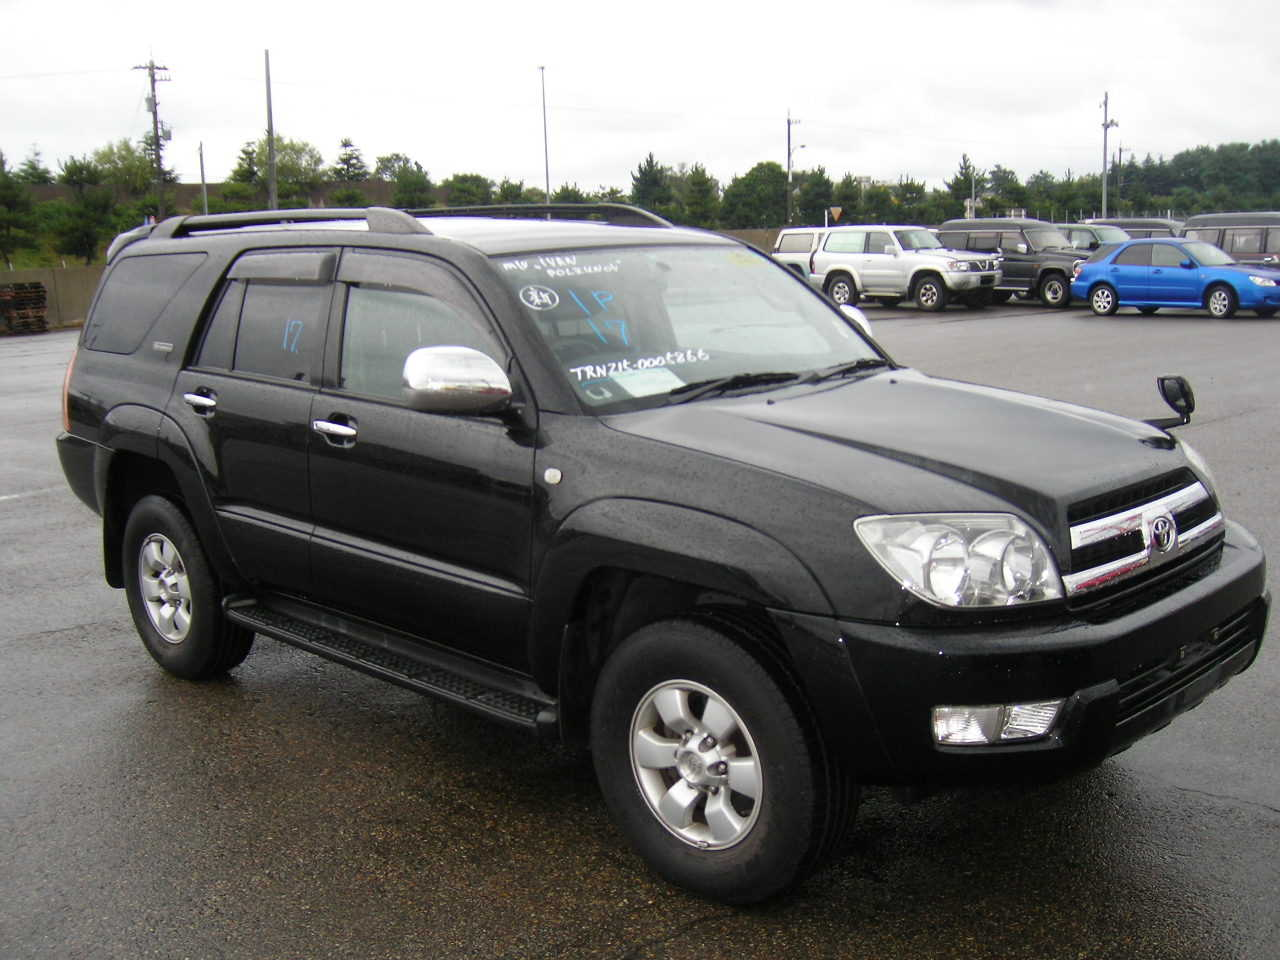 Used 2005 Toyota Hilux Surf Photos 2700cc Gasoline